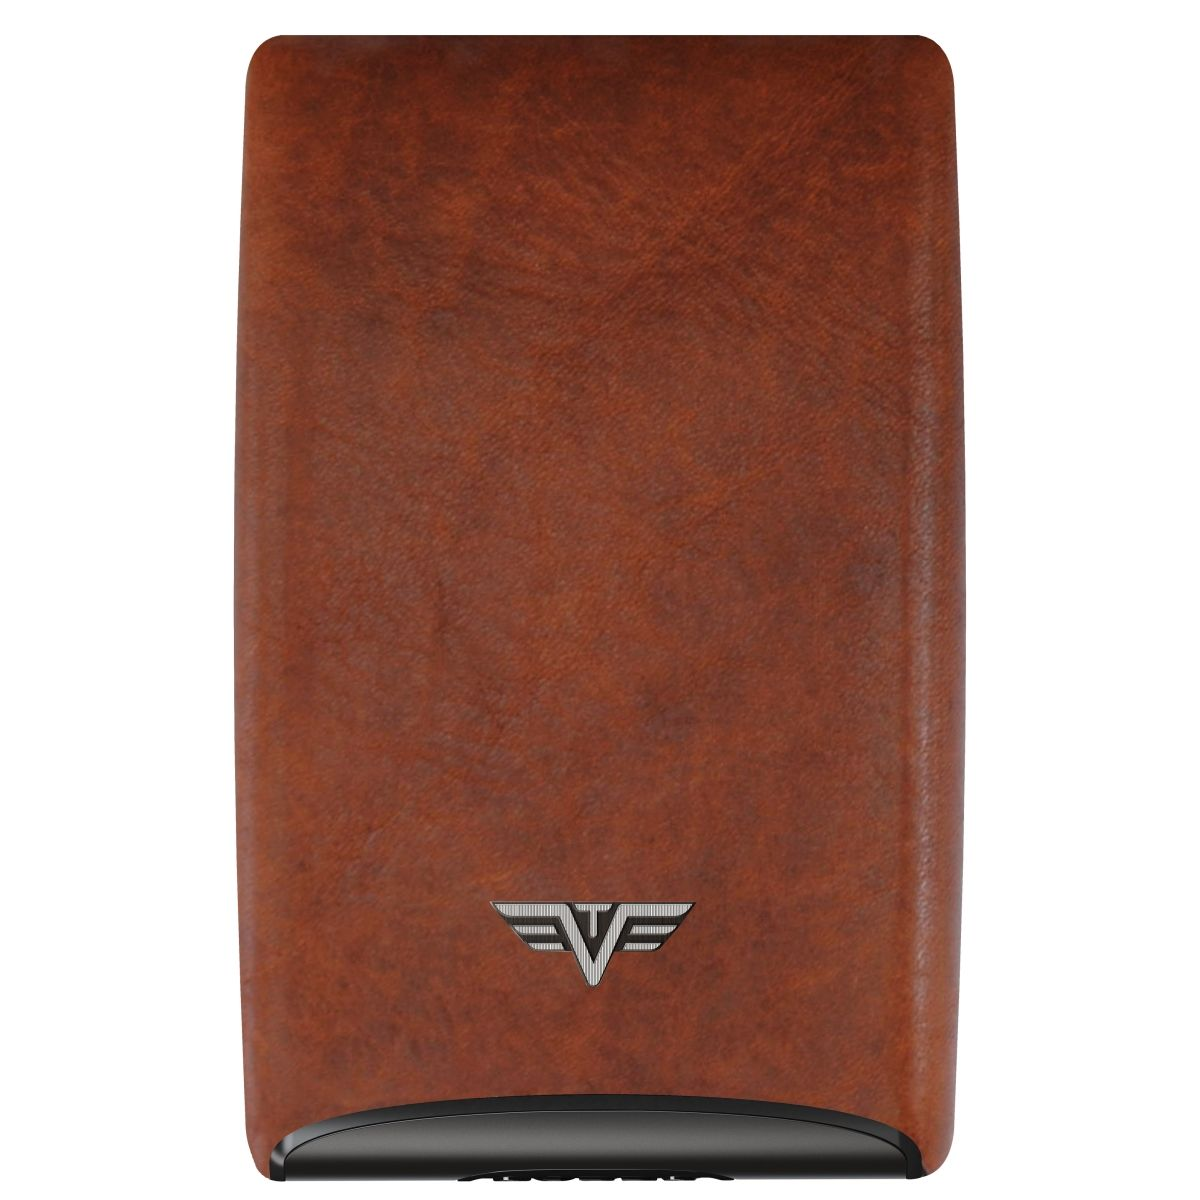 TRU VIRTU Aluminum Card Case Fan Leather Line - Natural Brown